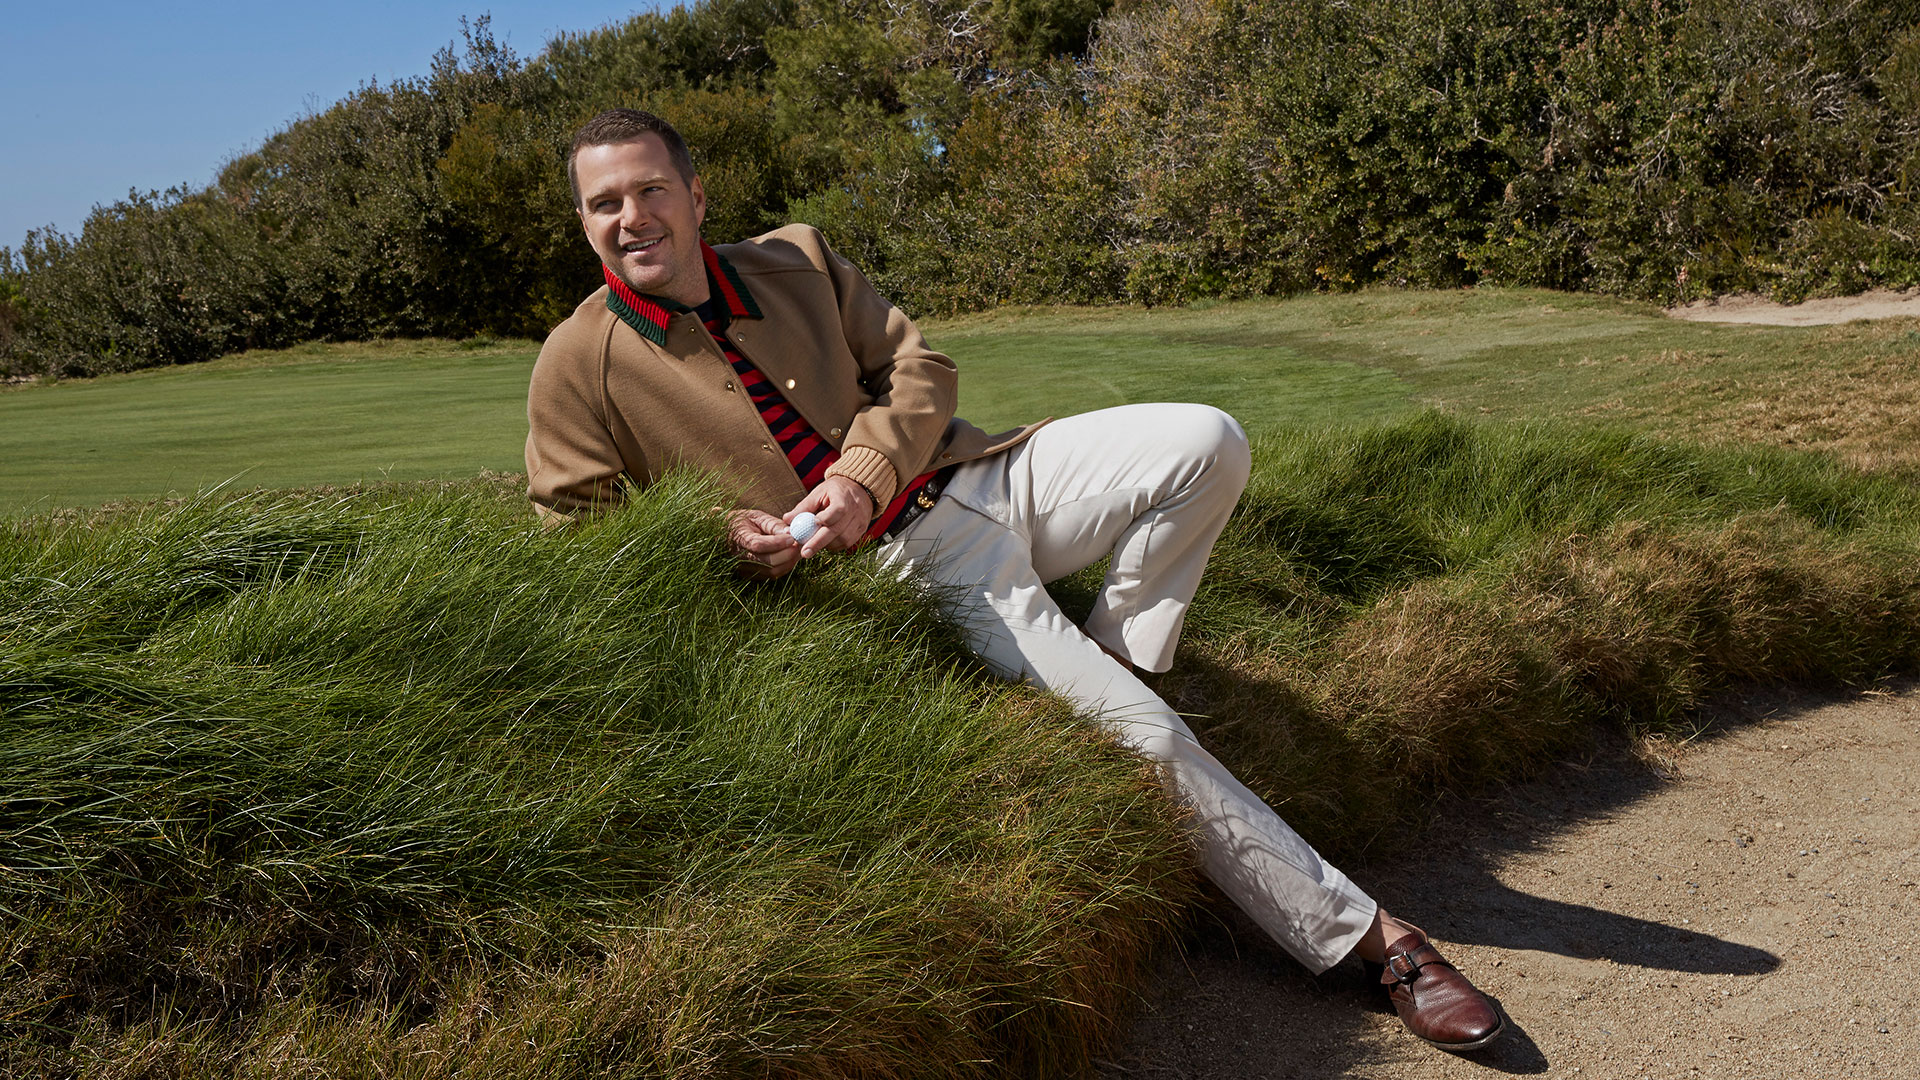 Chris O'Donnell hits the links